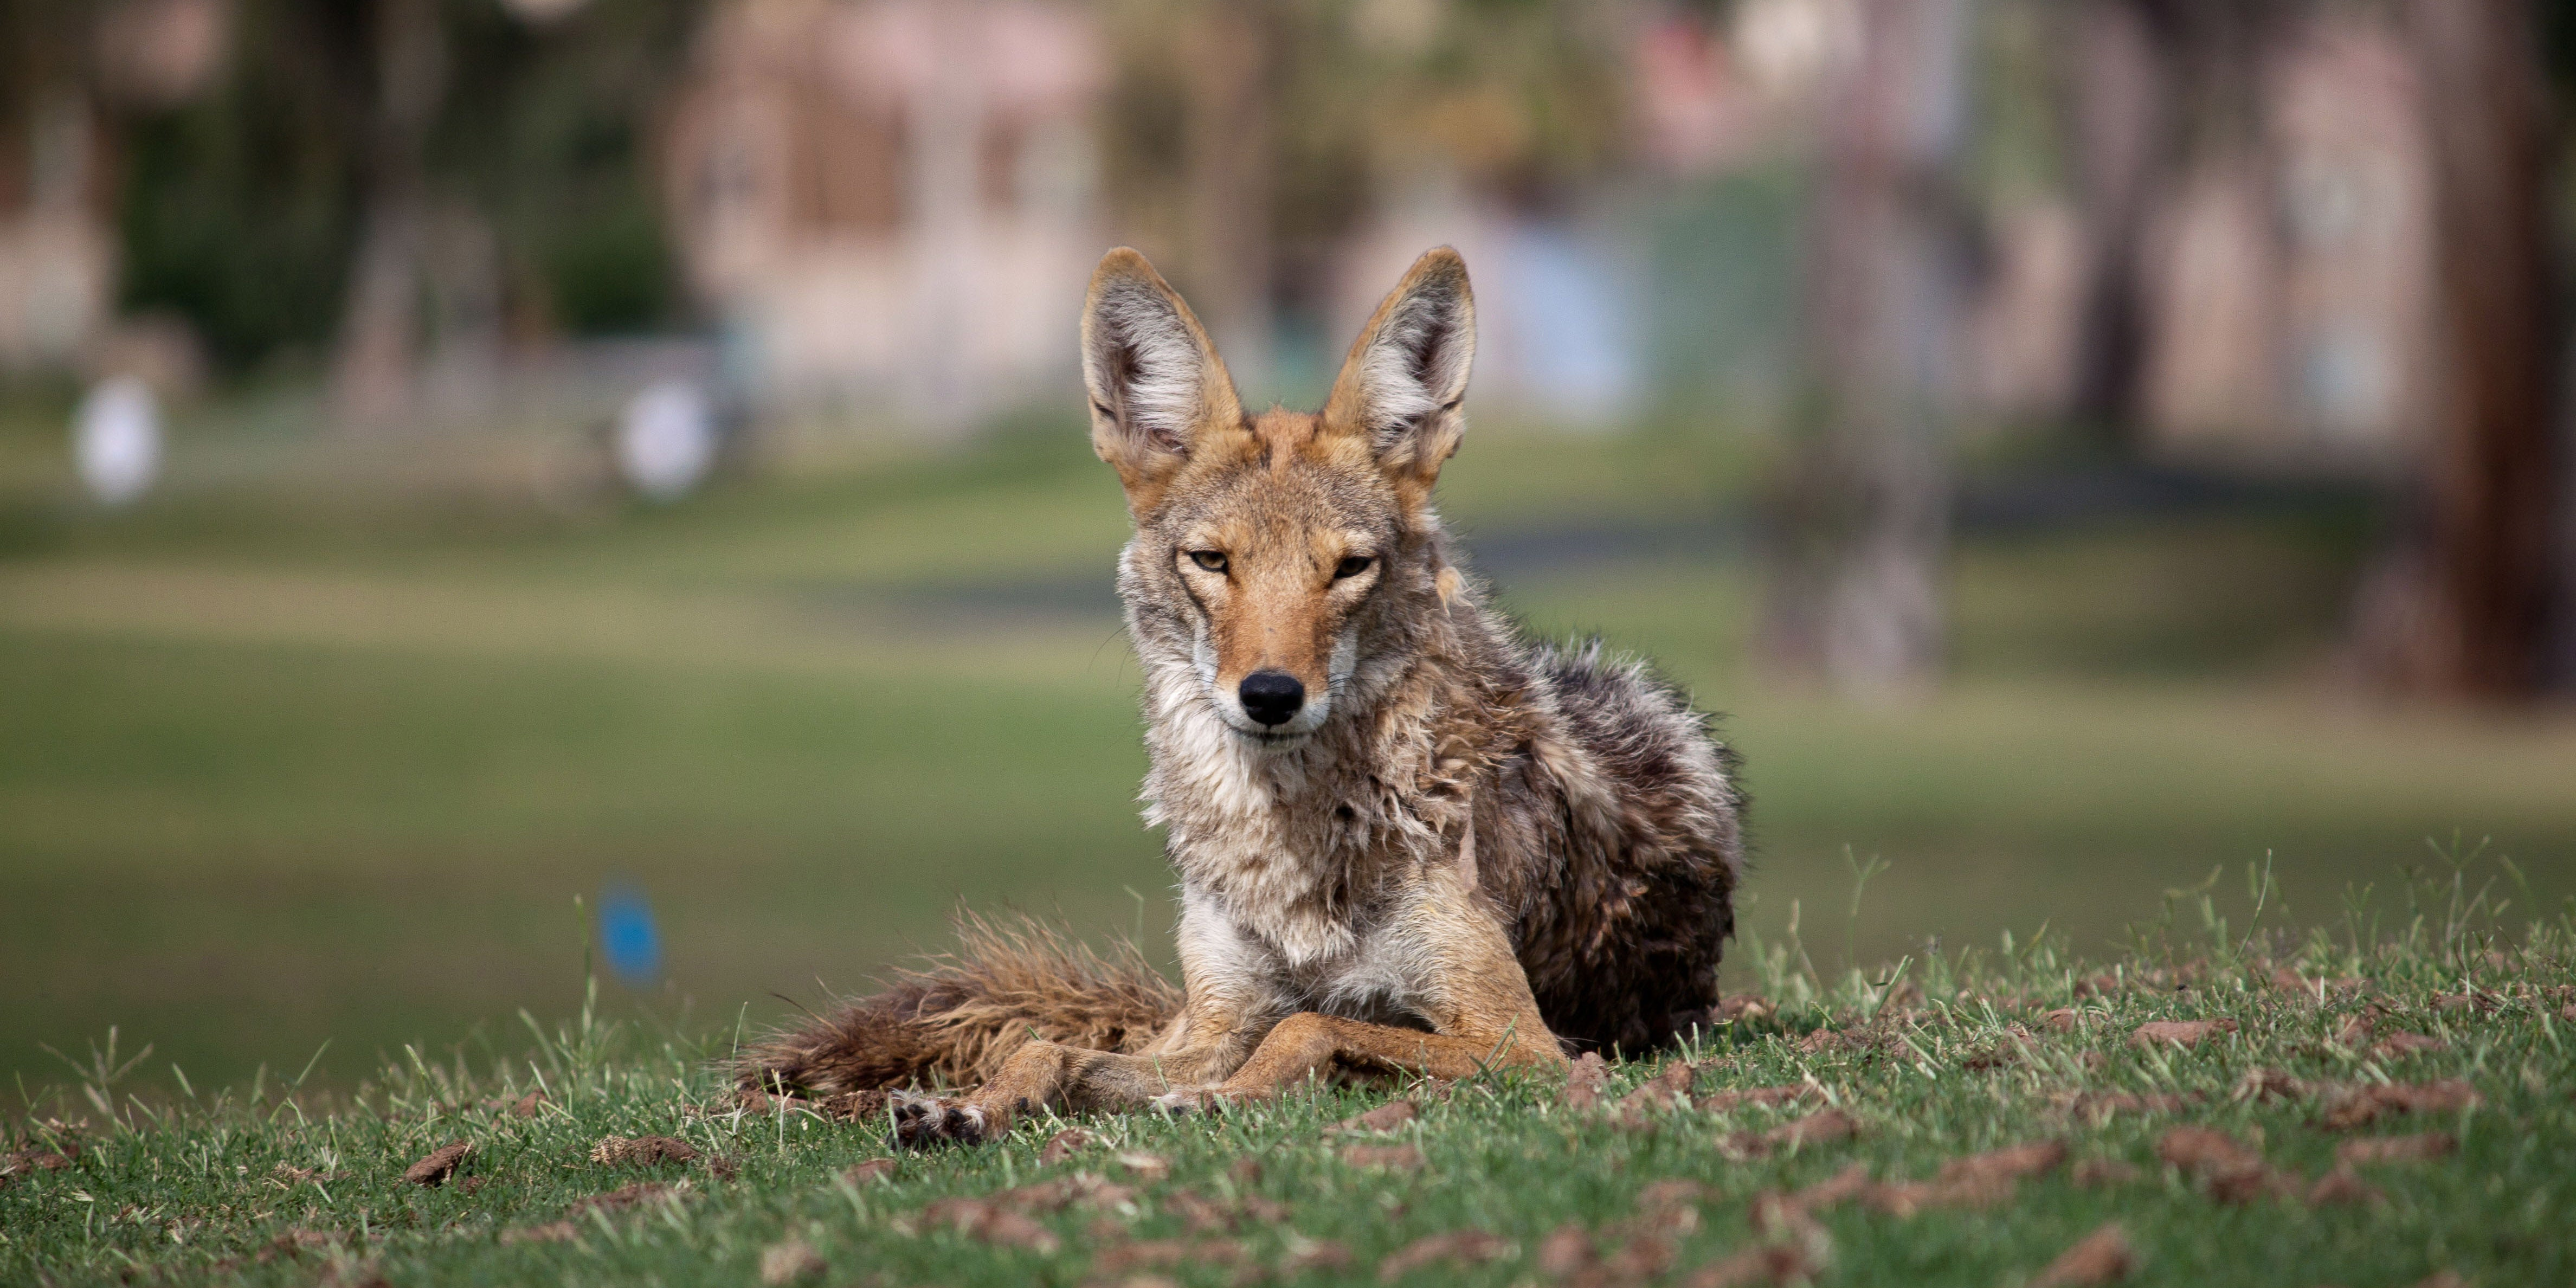 How Cities Are Adapting to More Coyotes, Cougars and Urban Wildlife